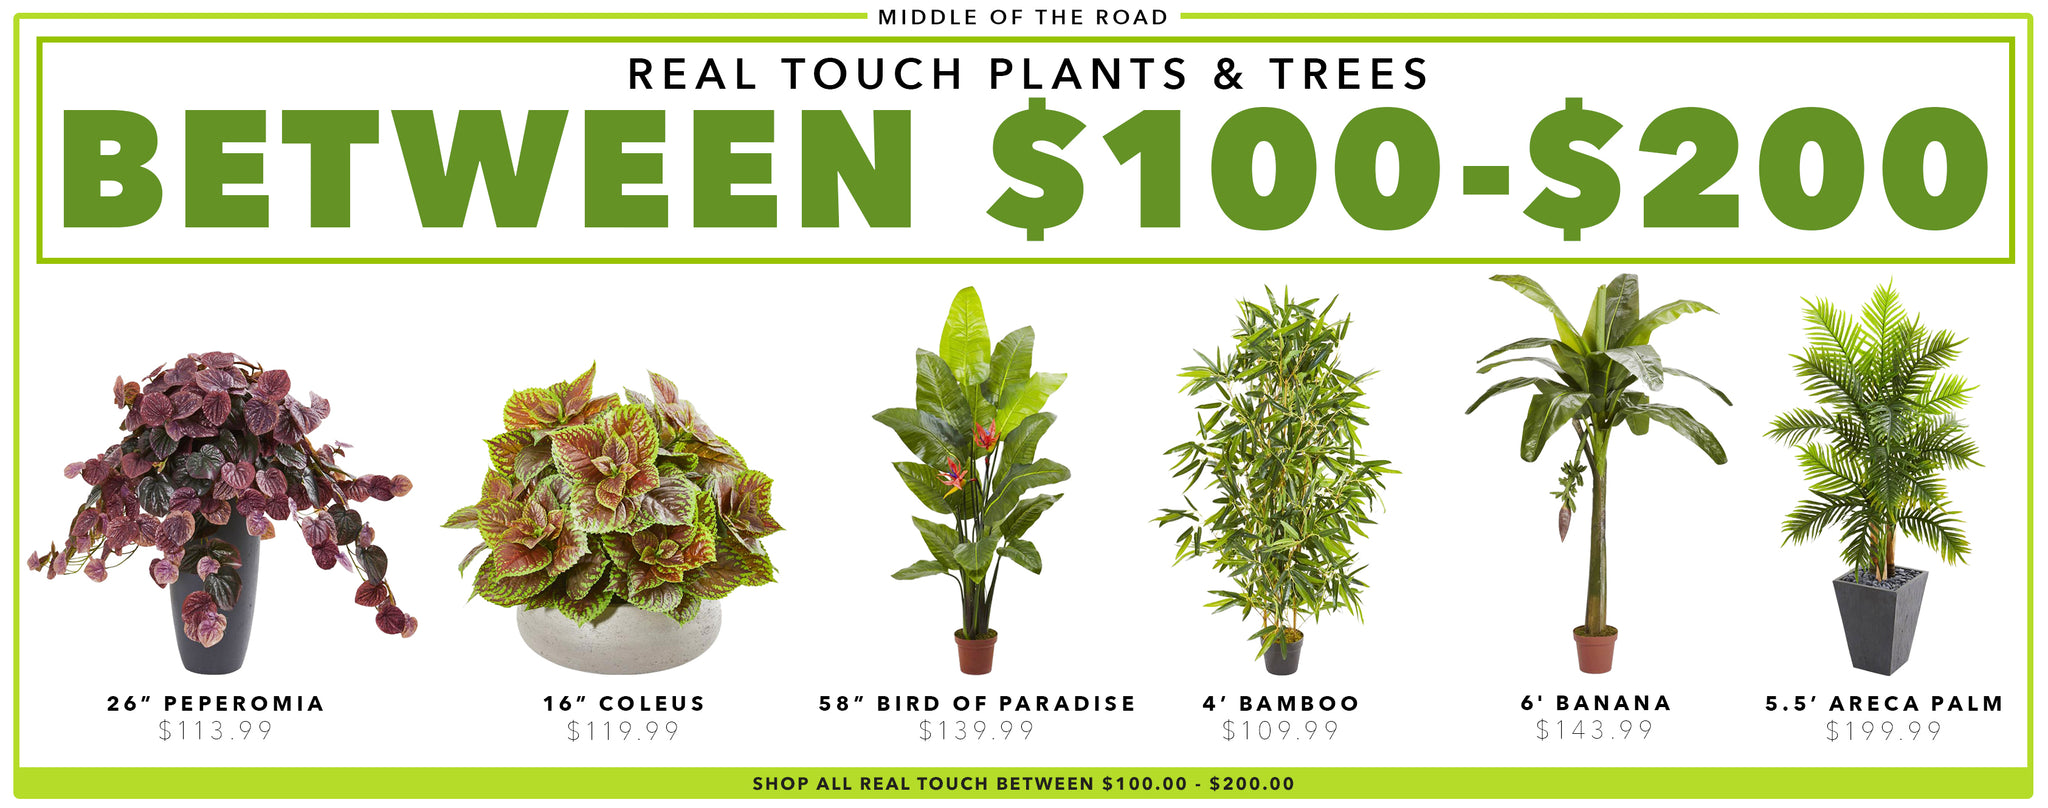 Real Touch Plants & Trees Between $100 - $200